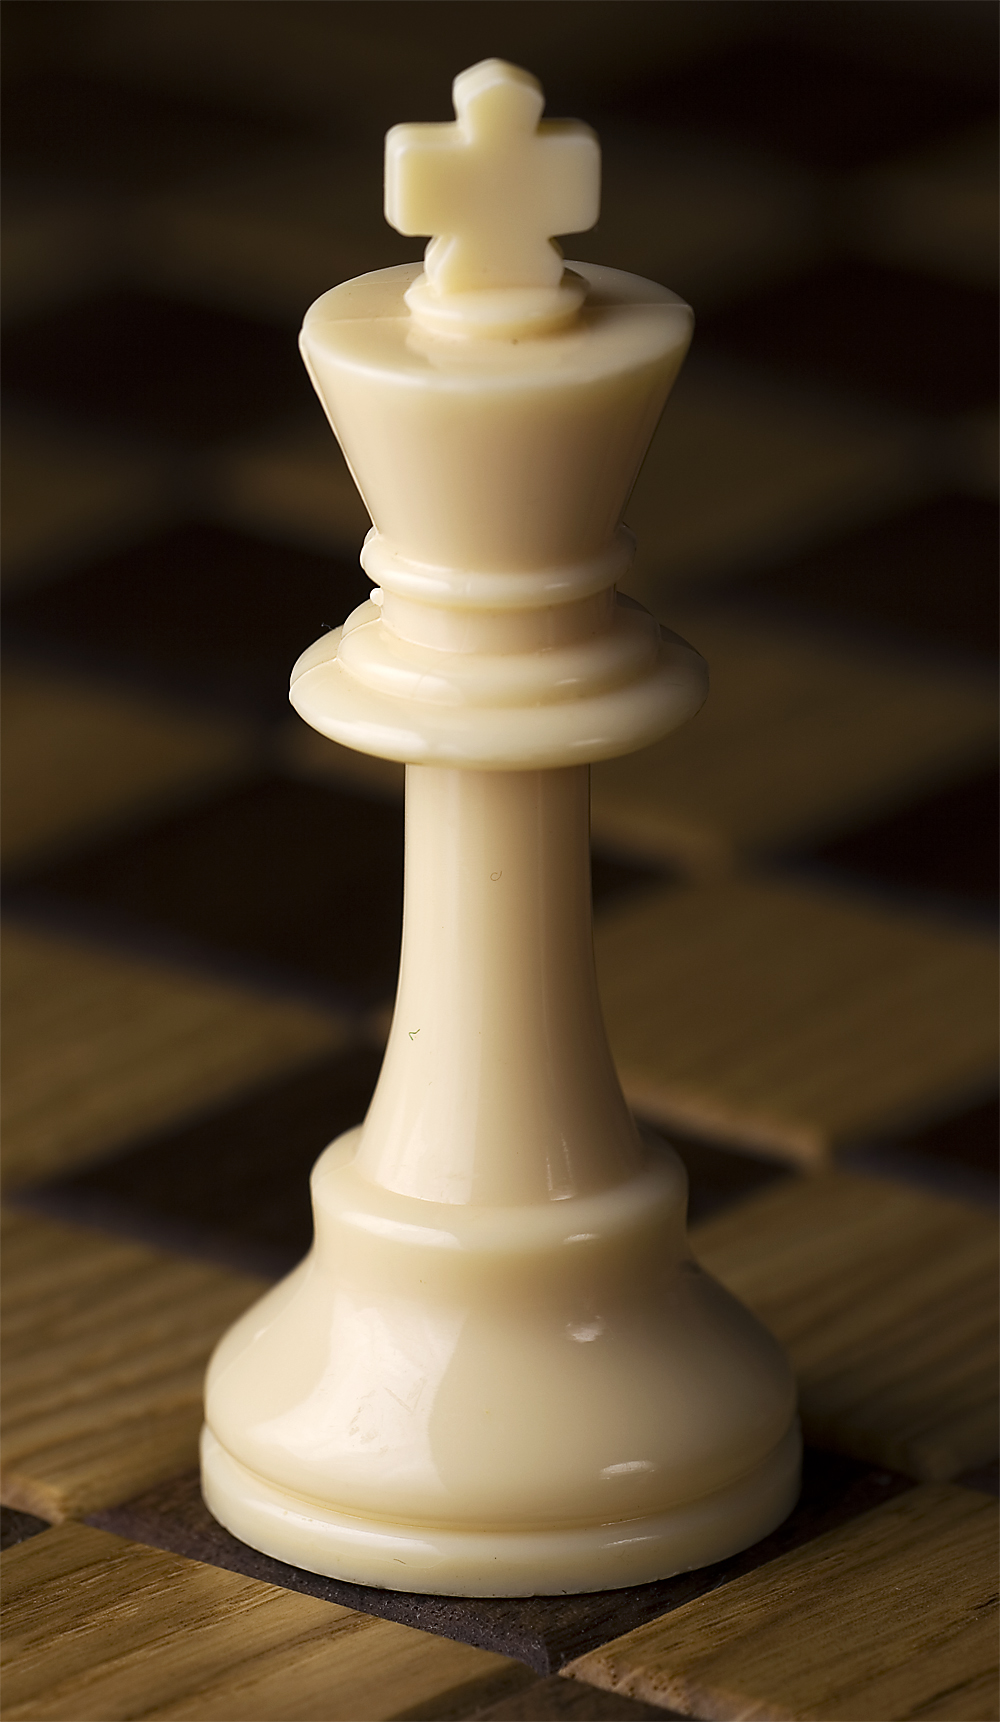 King (chess) - Wikipedia